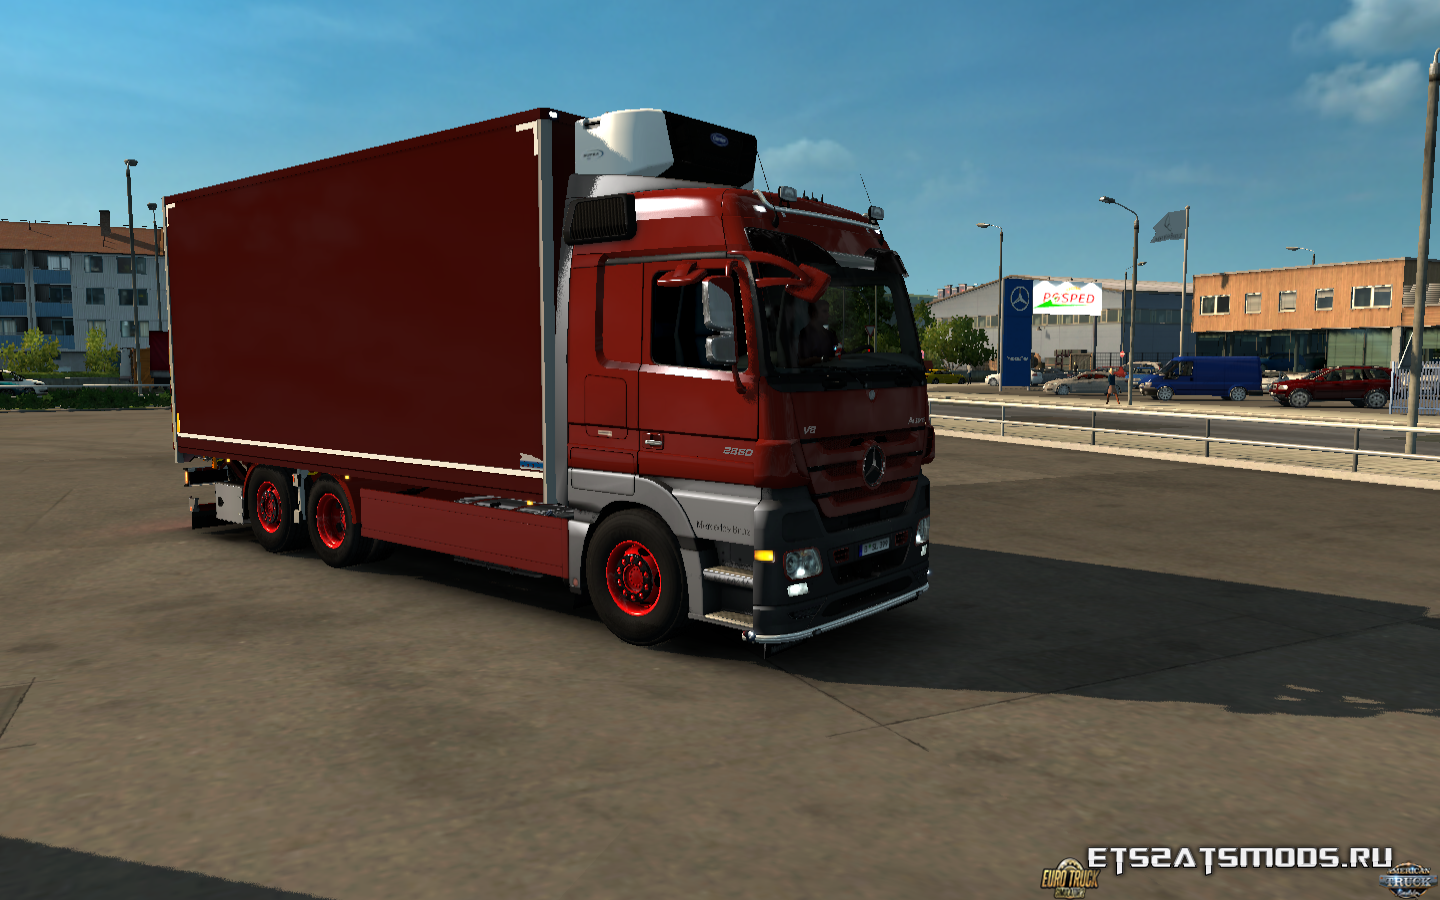 ets2_20180606_085025_00.png